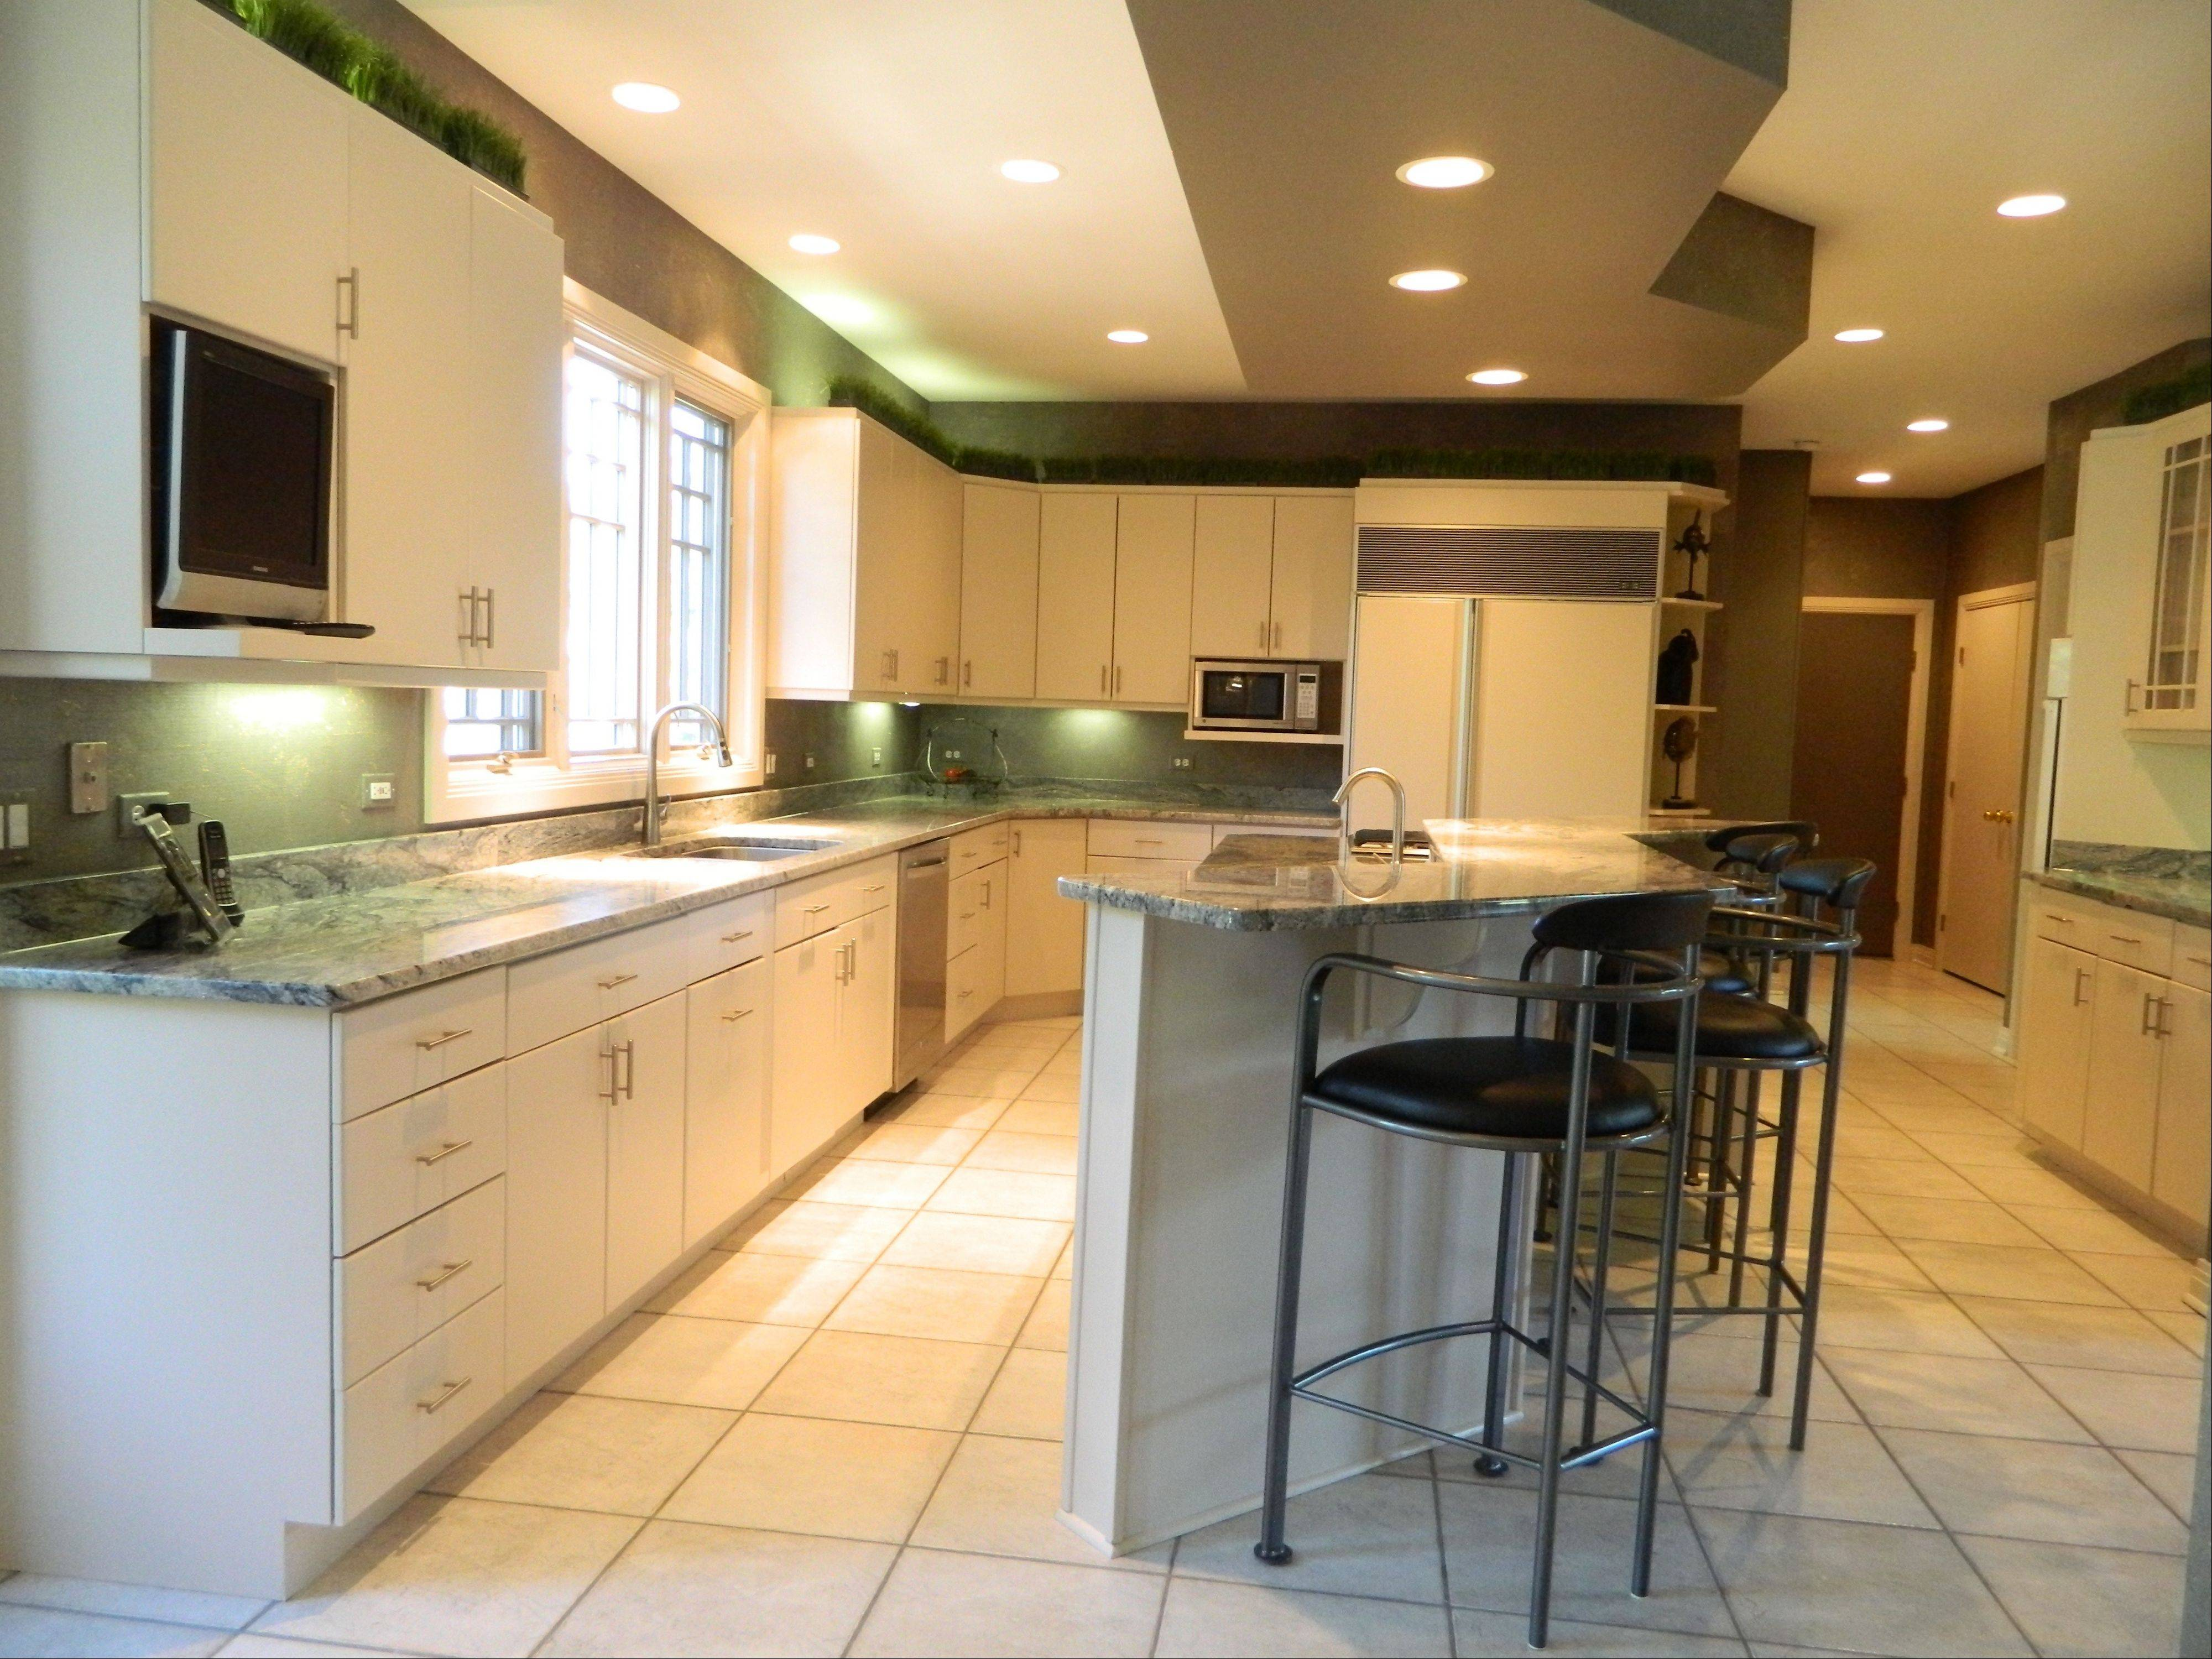 The home has a contemporary, ceramic-tiled kitchen.